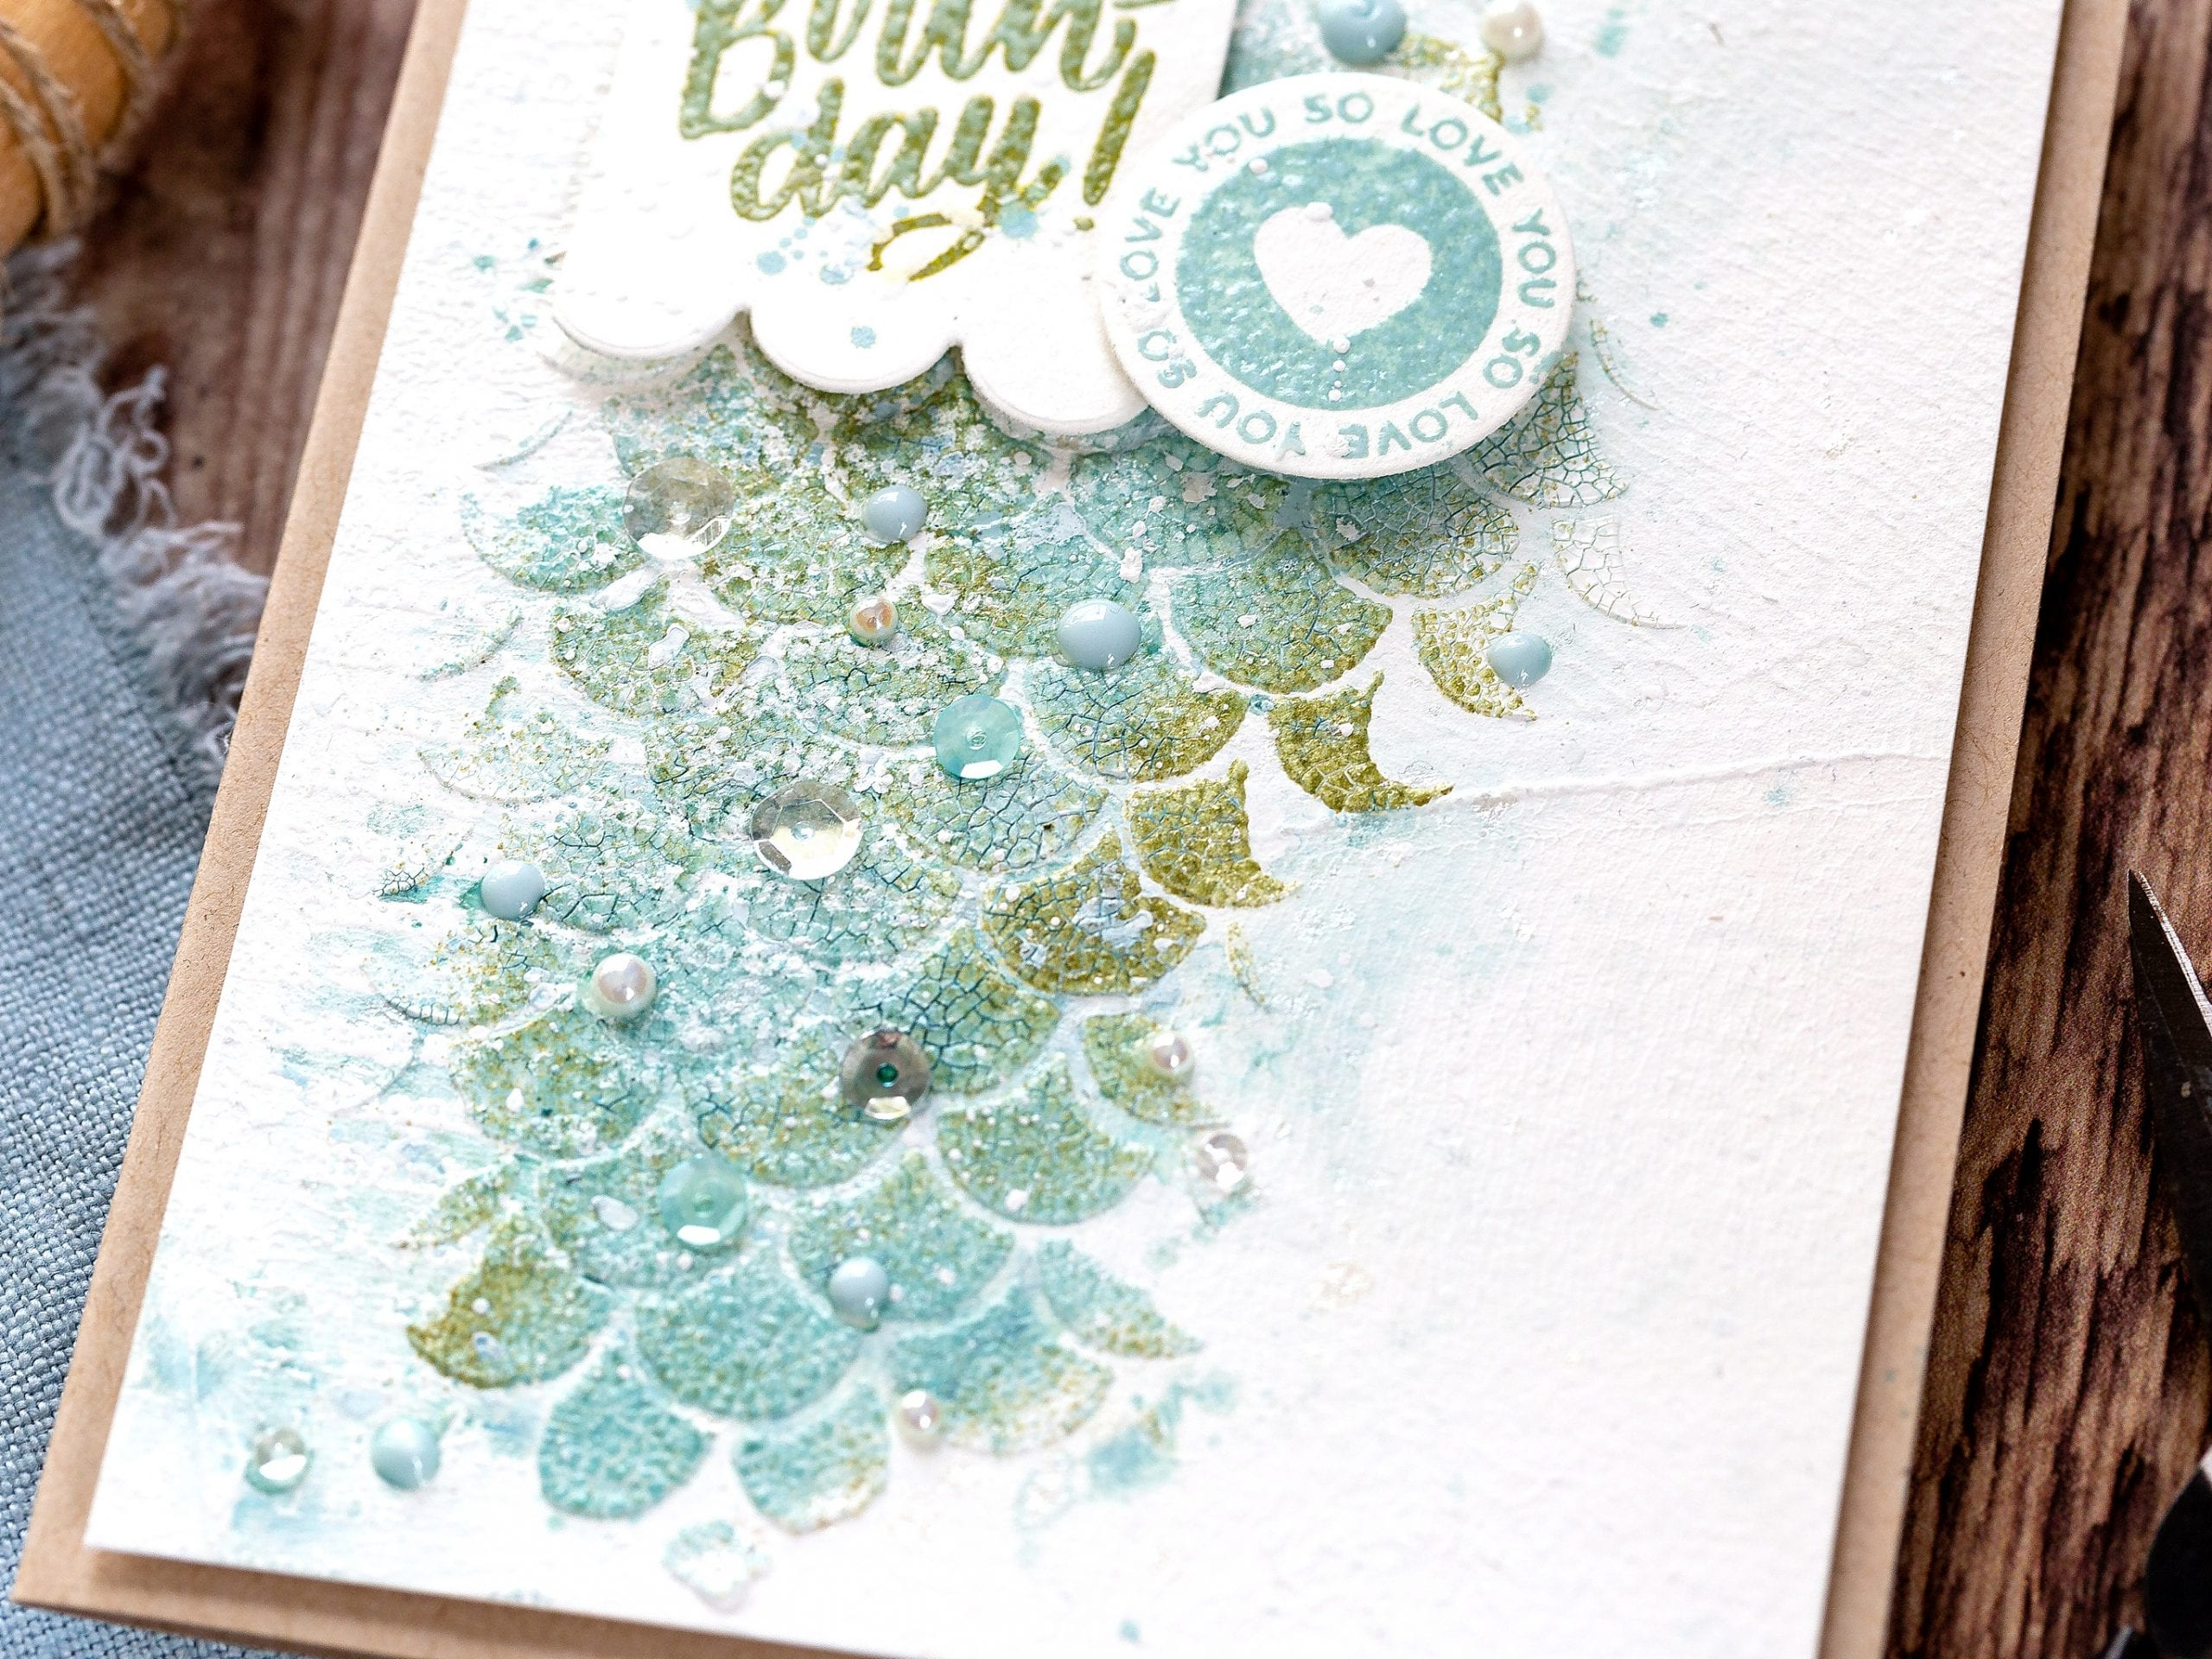 Tutorial experimenting with Distress Embossing Glaze + Texture. Handmade card by Debby Hughes using supplies from Simon Says Stamp, CZ Design and Tim Holtz